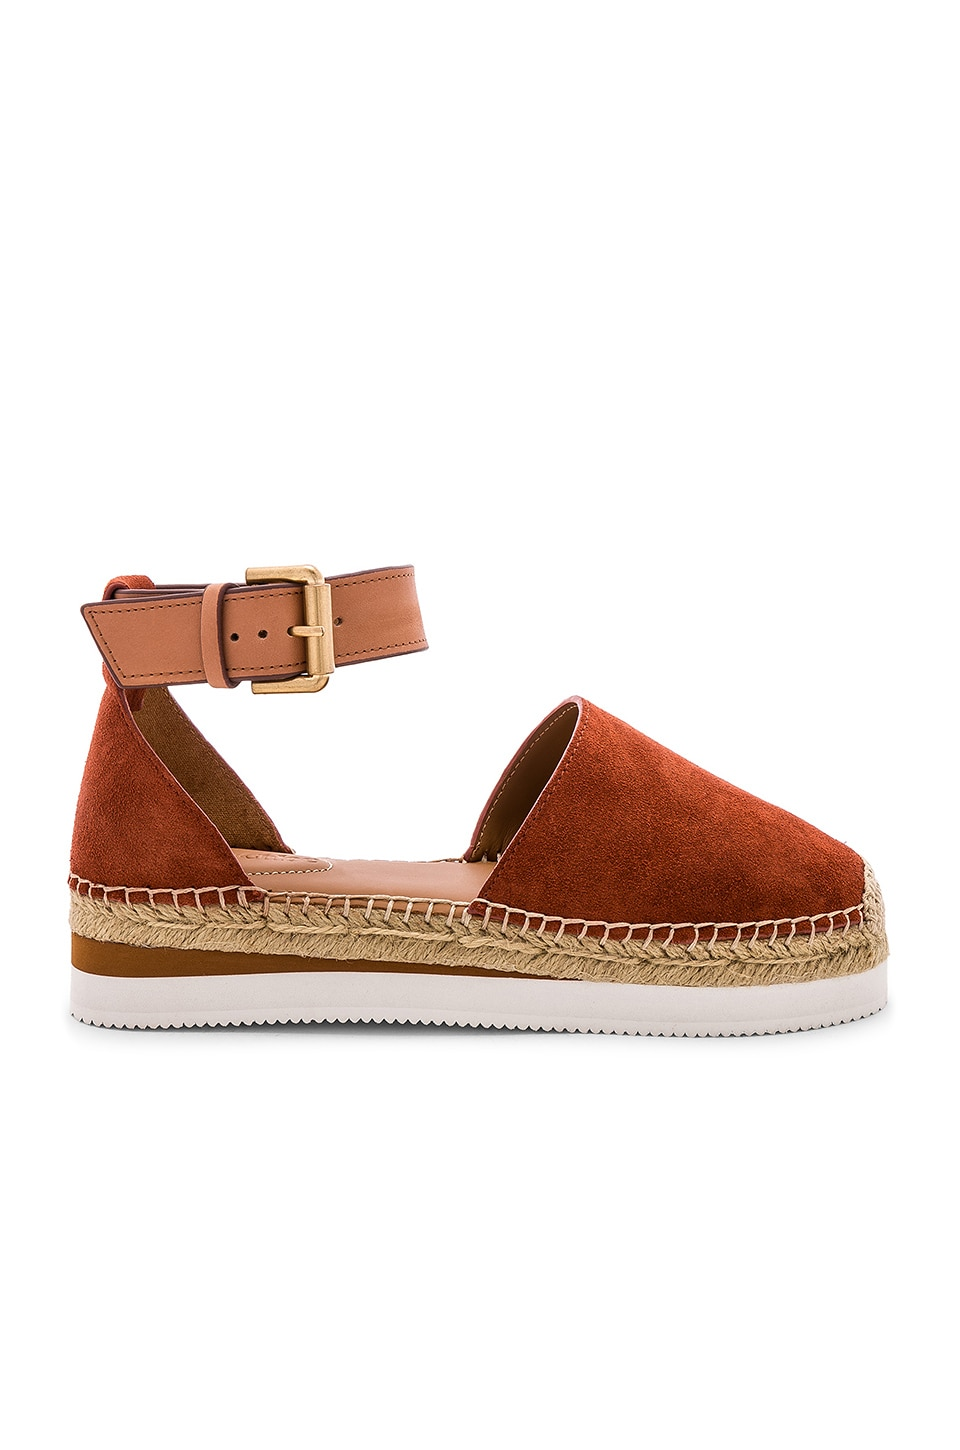 See By Chloe Glyn Espadrille Sandal in Crosta Fox & Natural Calf